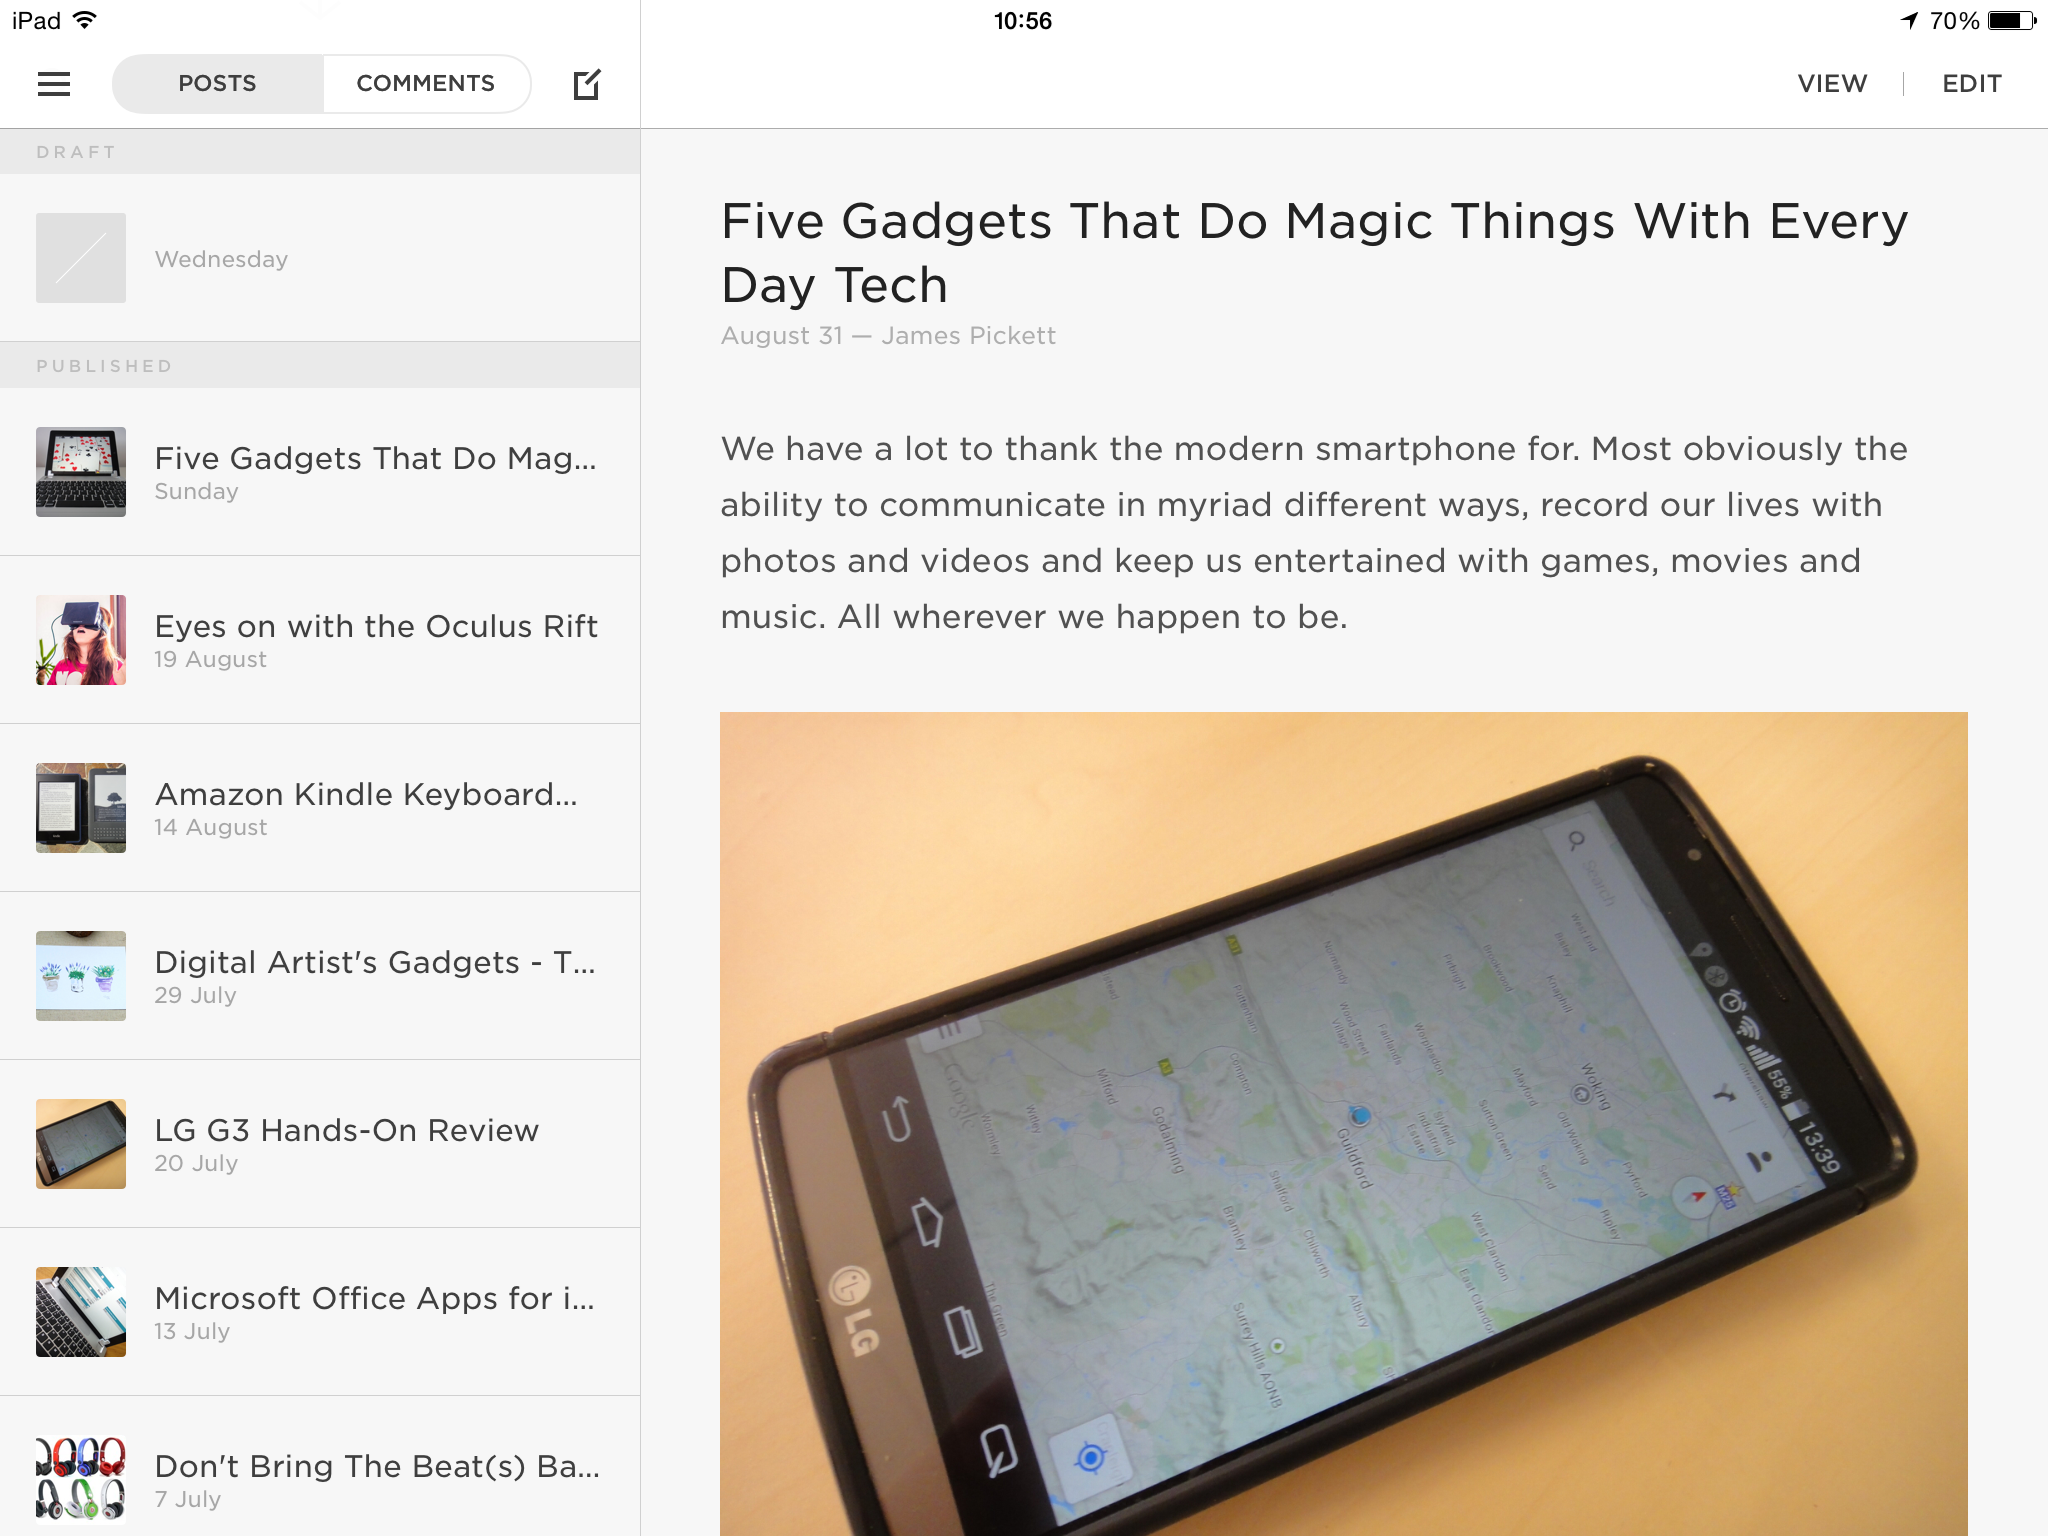 Squarespace Blog on iPad looks nice, but only supports basic functionality